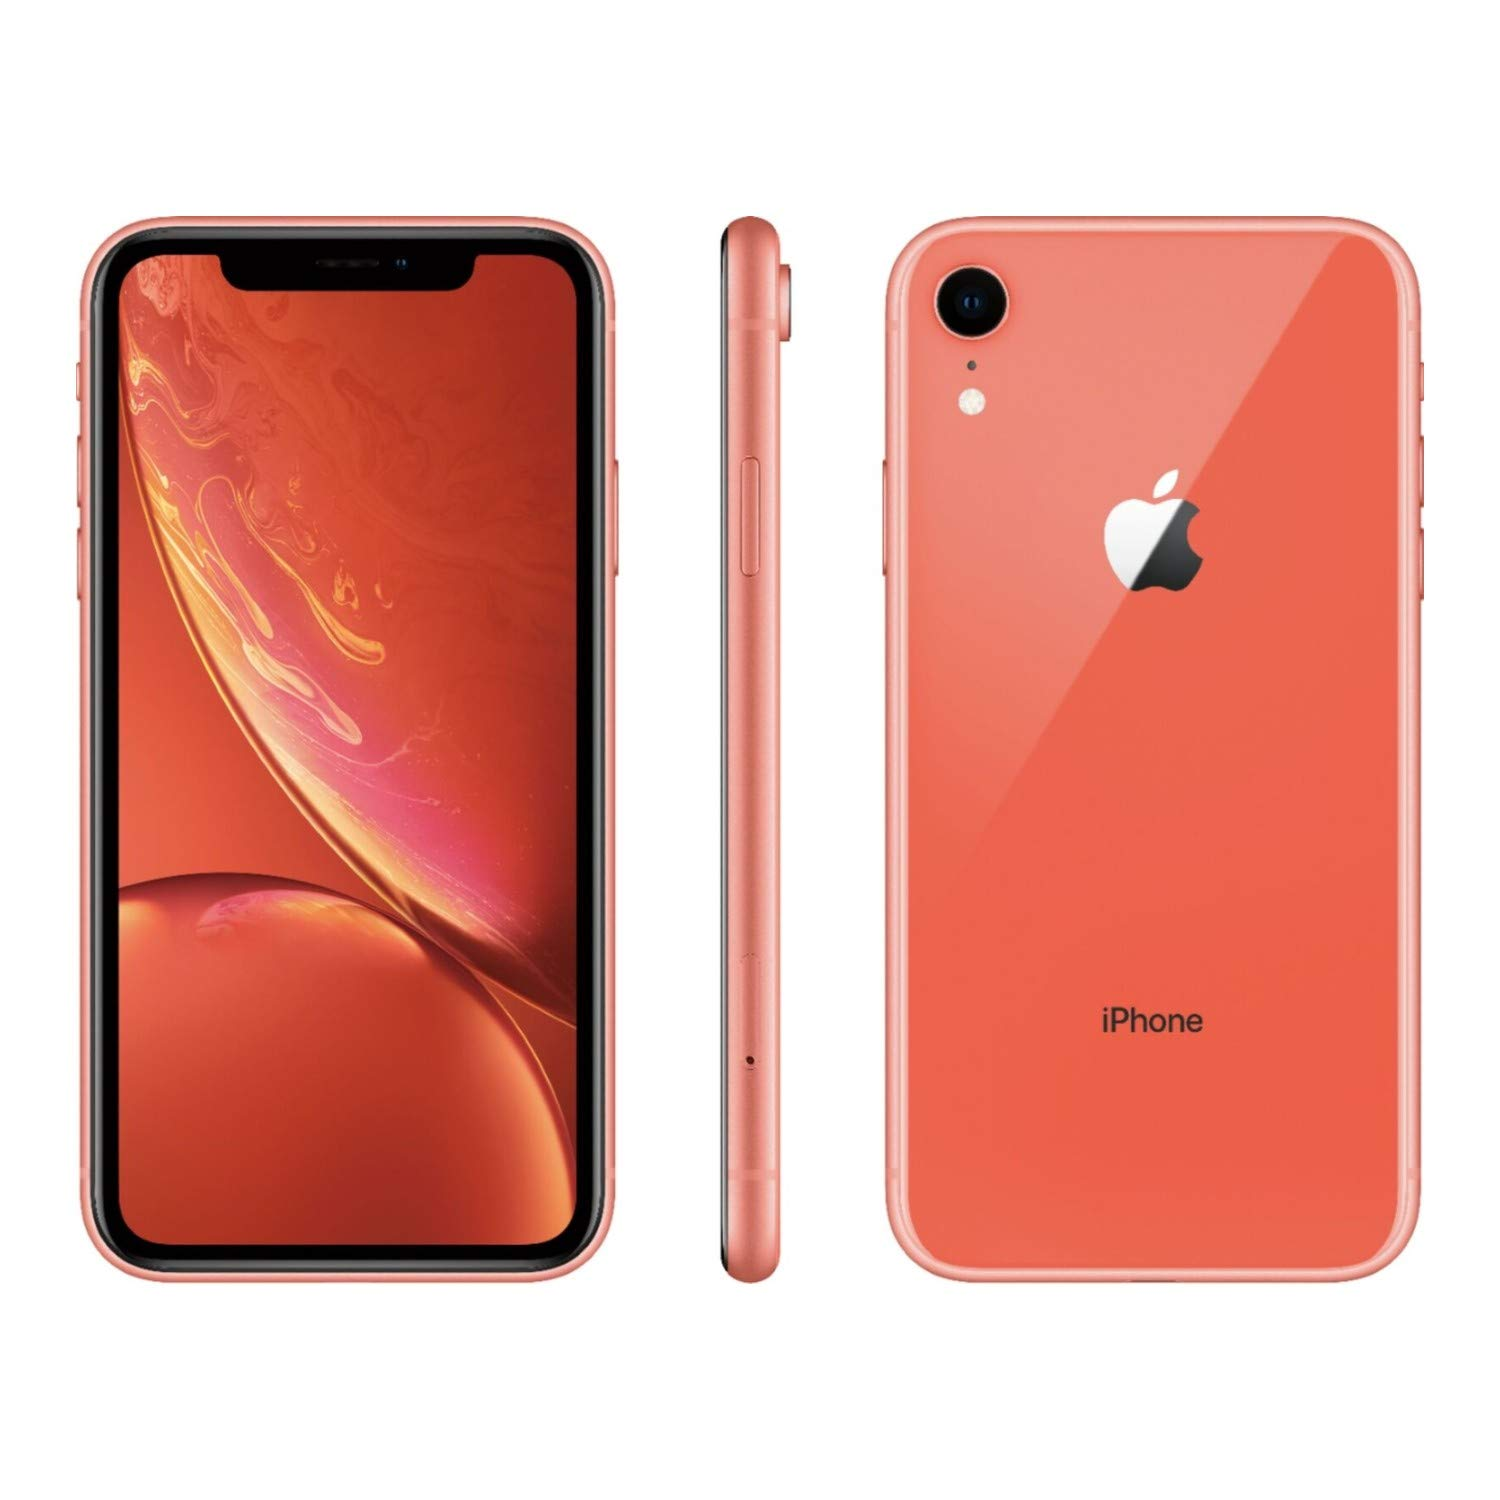 Apple iPhone XR, 64GB, Coral – Fully Unlocked (Renewed)